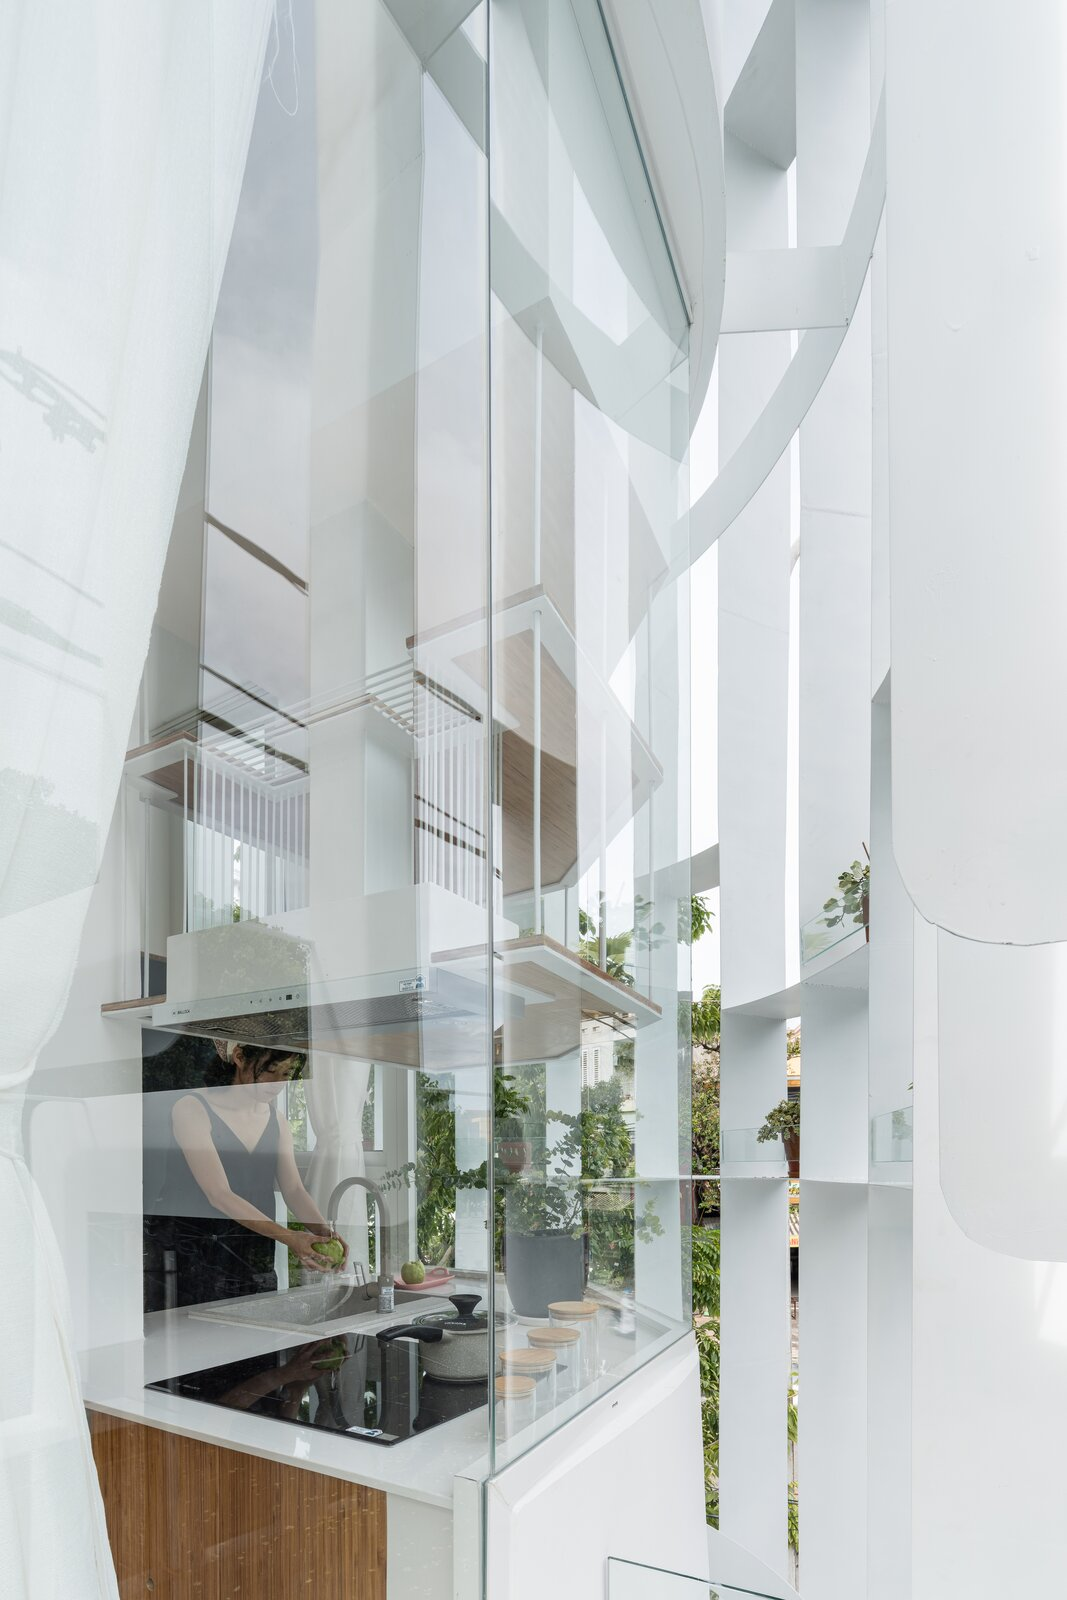 Exterior, Glass Siding Material, and Metal Siding Material  Photo 8 of 23 in A Translucent Tower in Vietnam Invites Visitors in for a Cup of Coffee